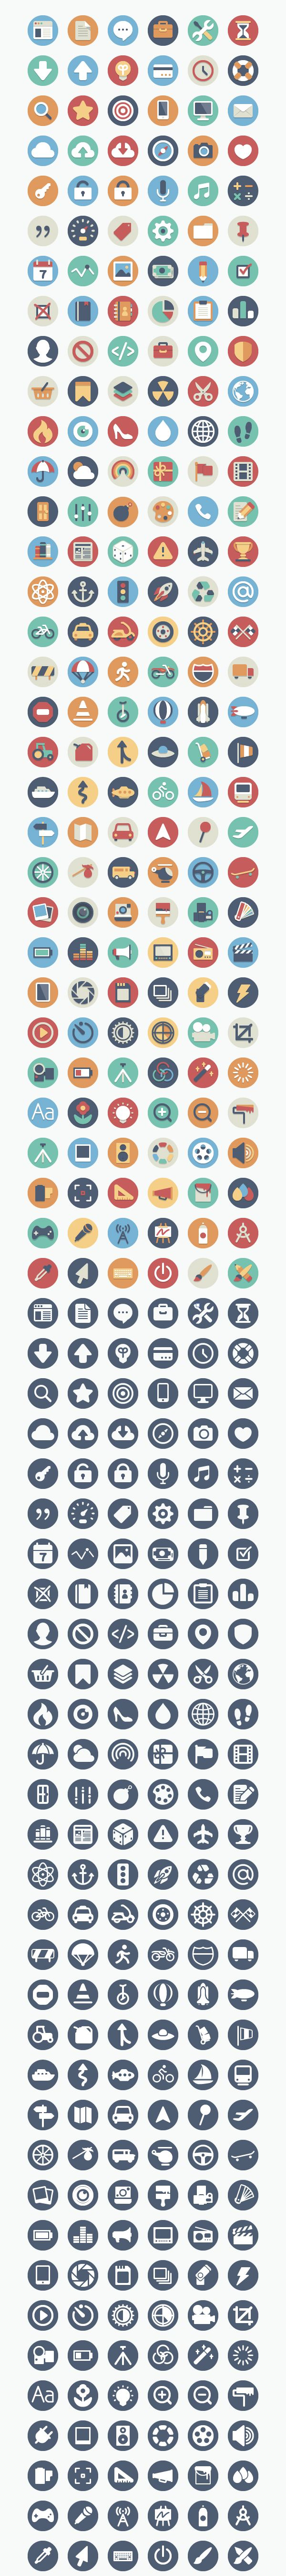 Elegant Themes - Beautiful Flat Icons - Download 384 Free And Open Source Variations